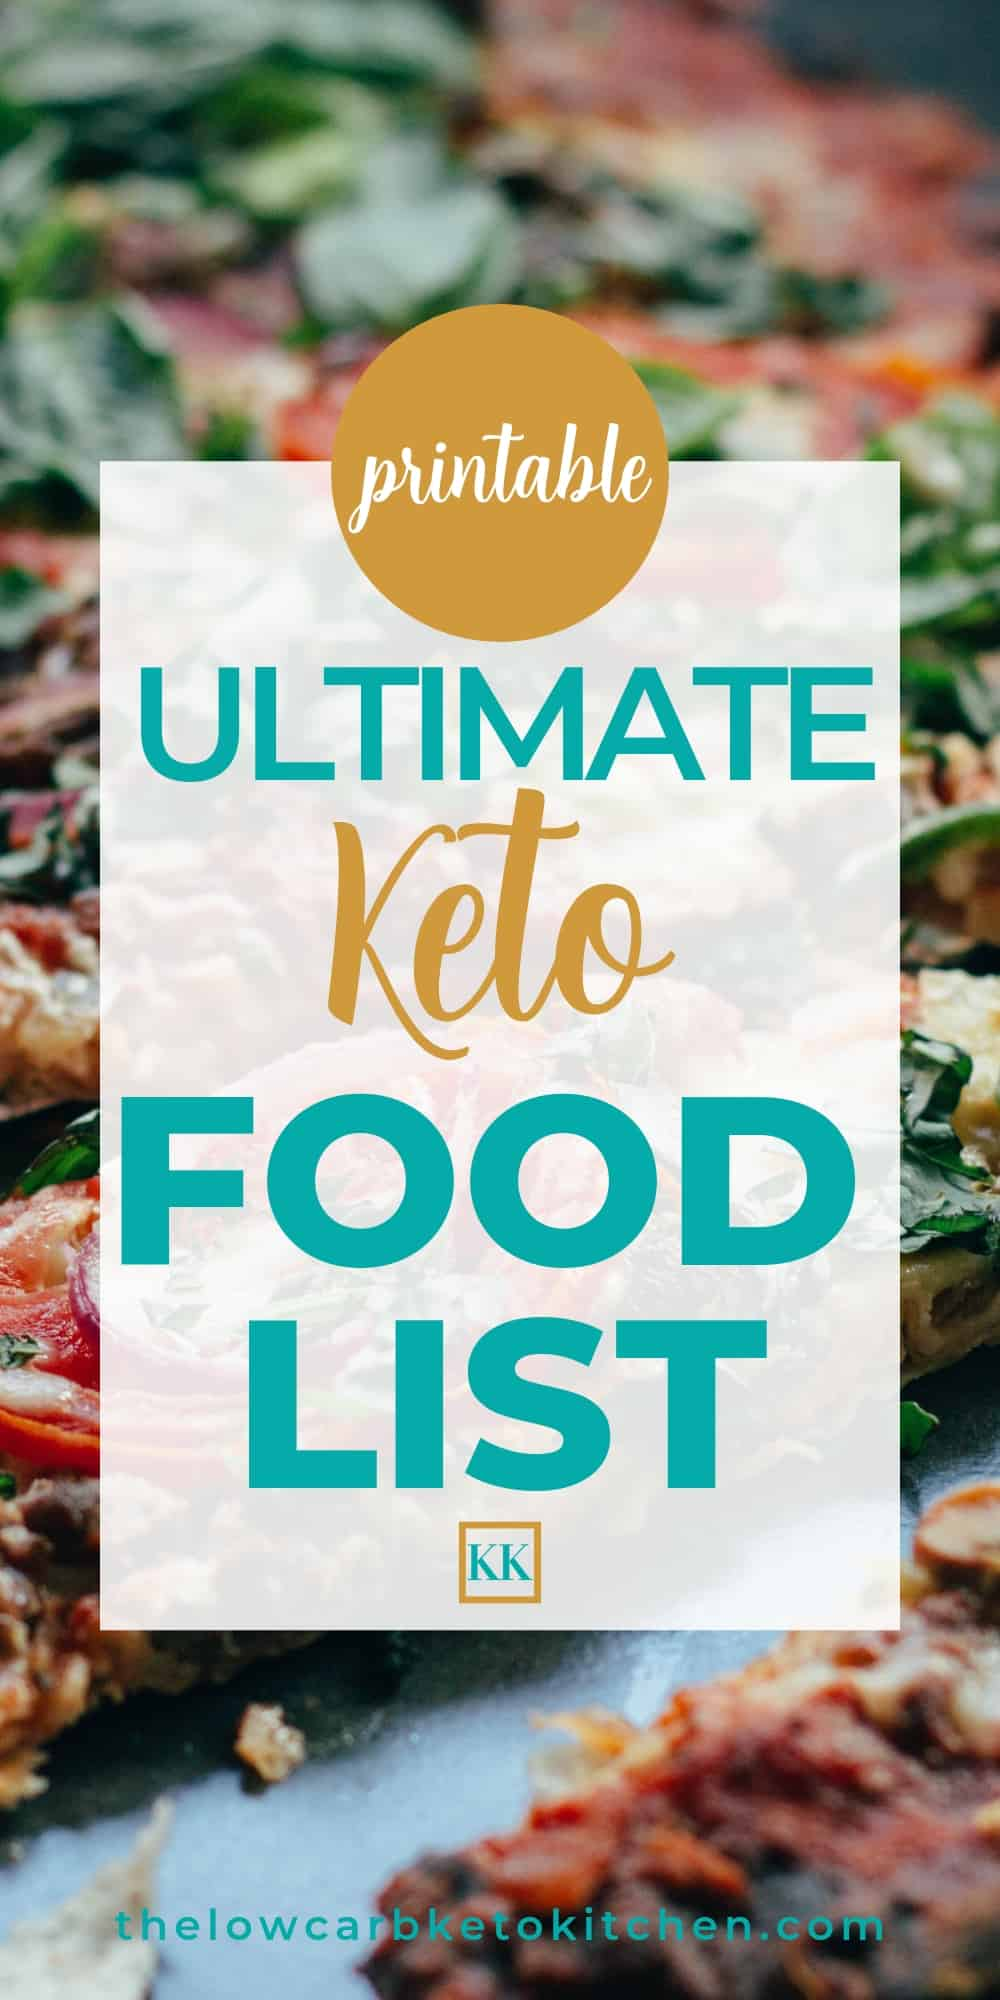 image regarding Free Printable Keto Food List known as The Supreme Keto Meals Checklist with Printable